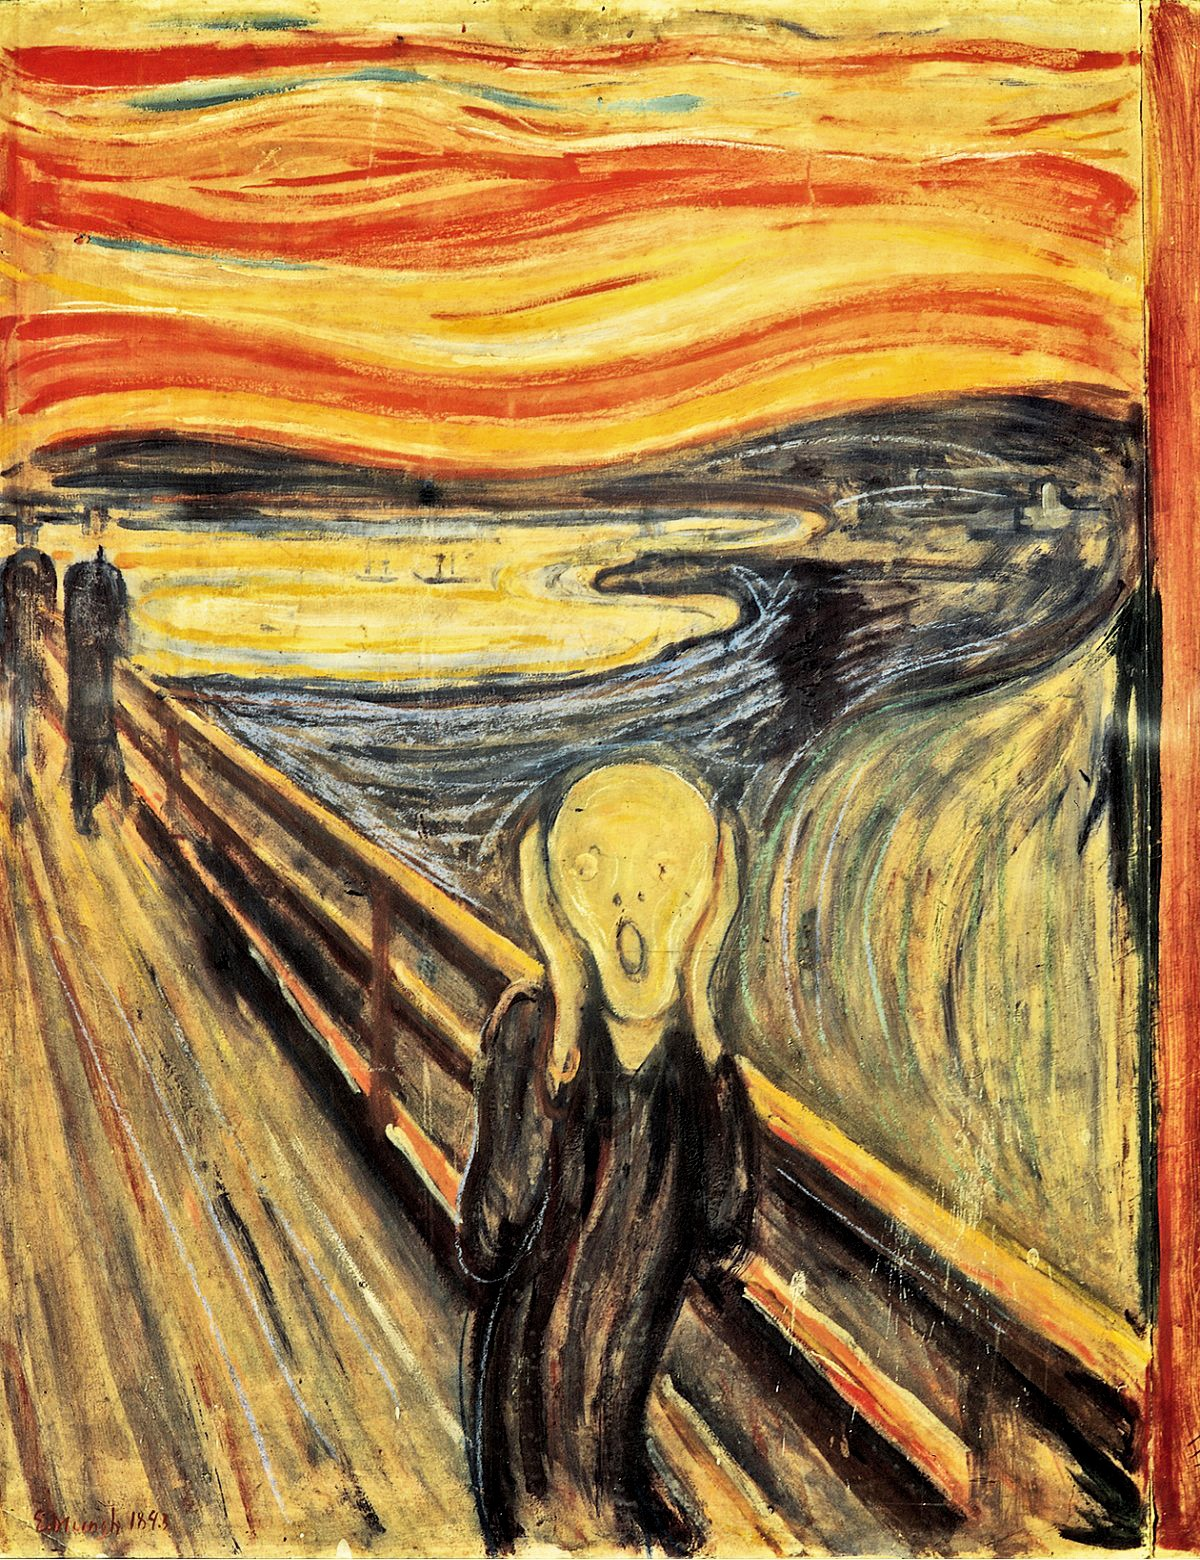 00 Edvard Munch. The Scream. 1893 | Art and Faith, Too